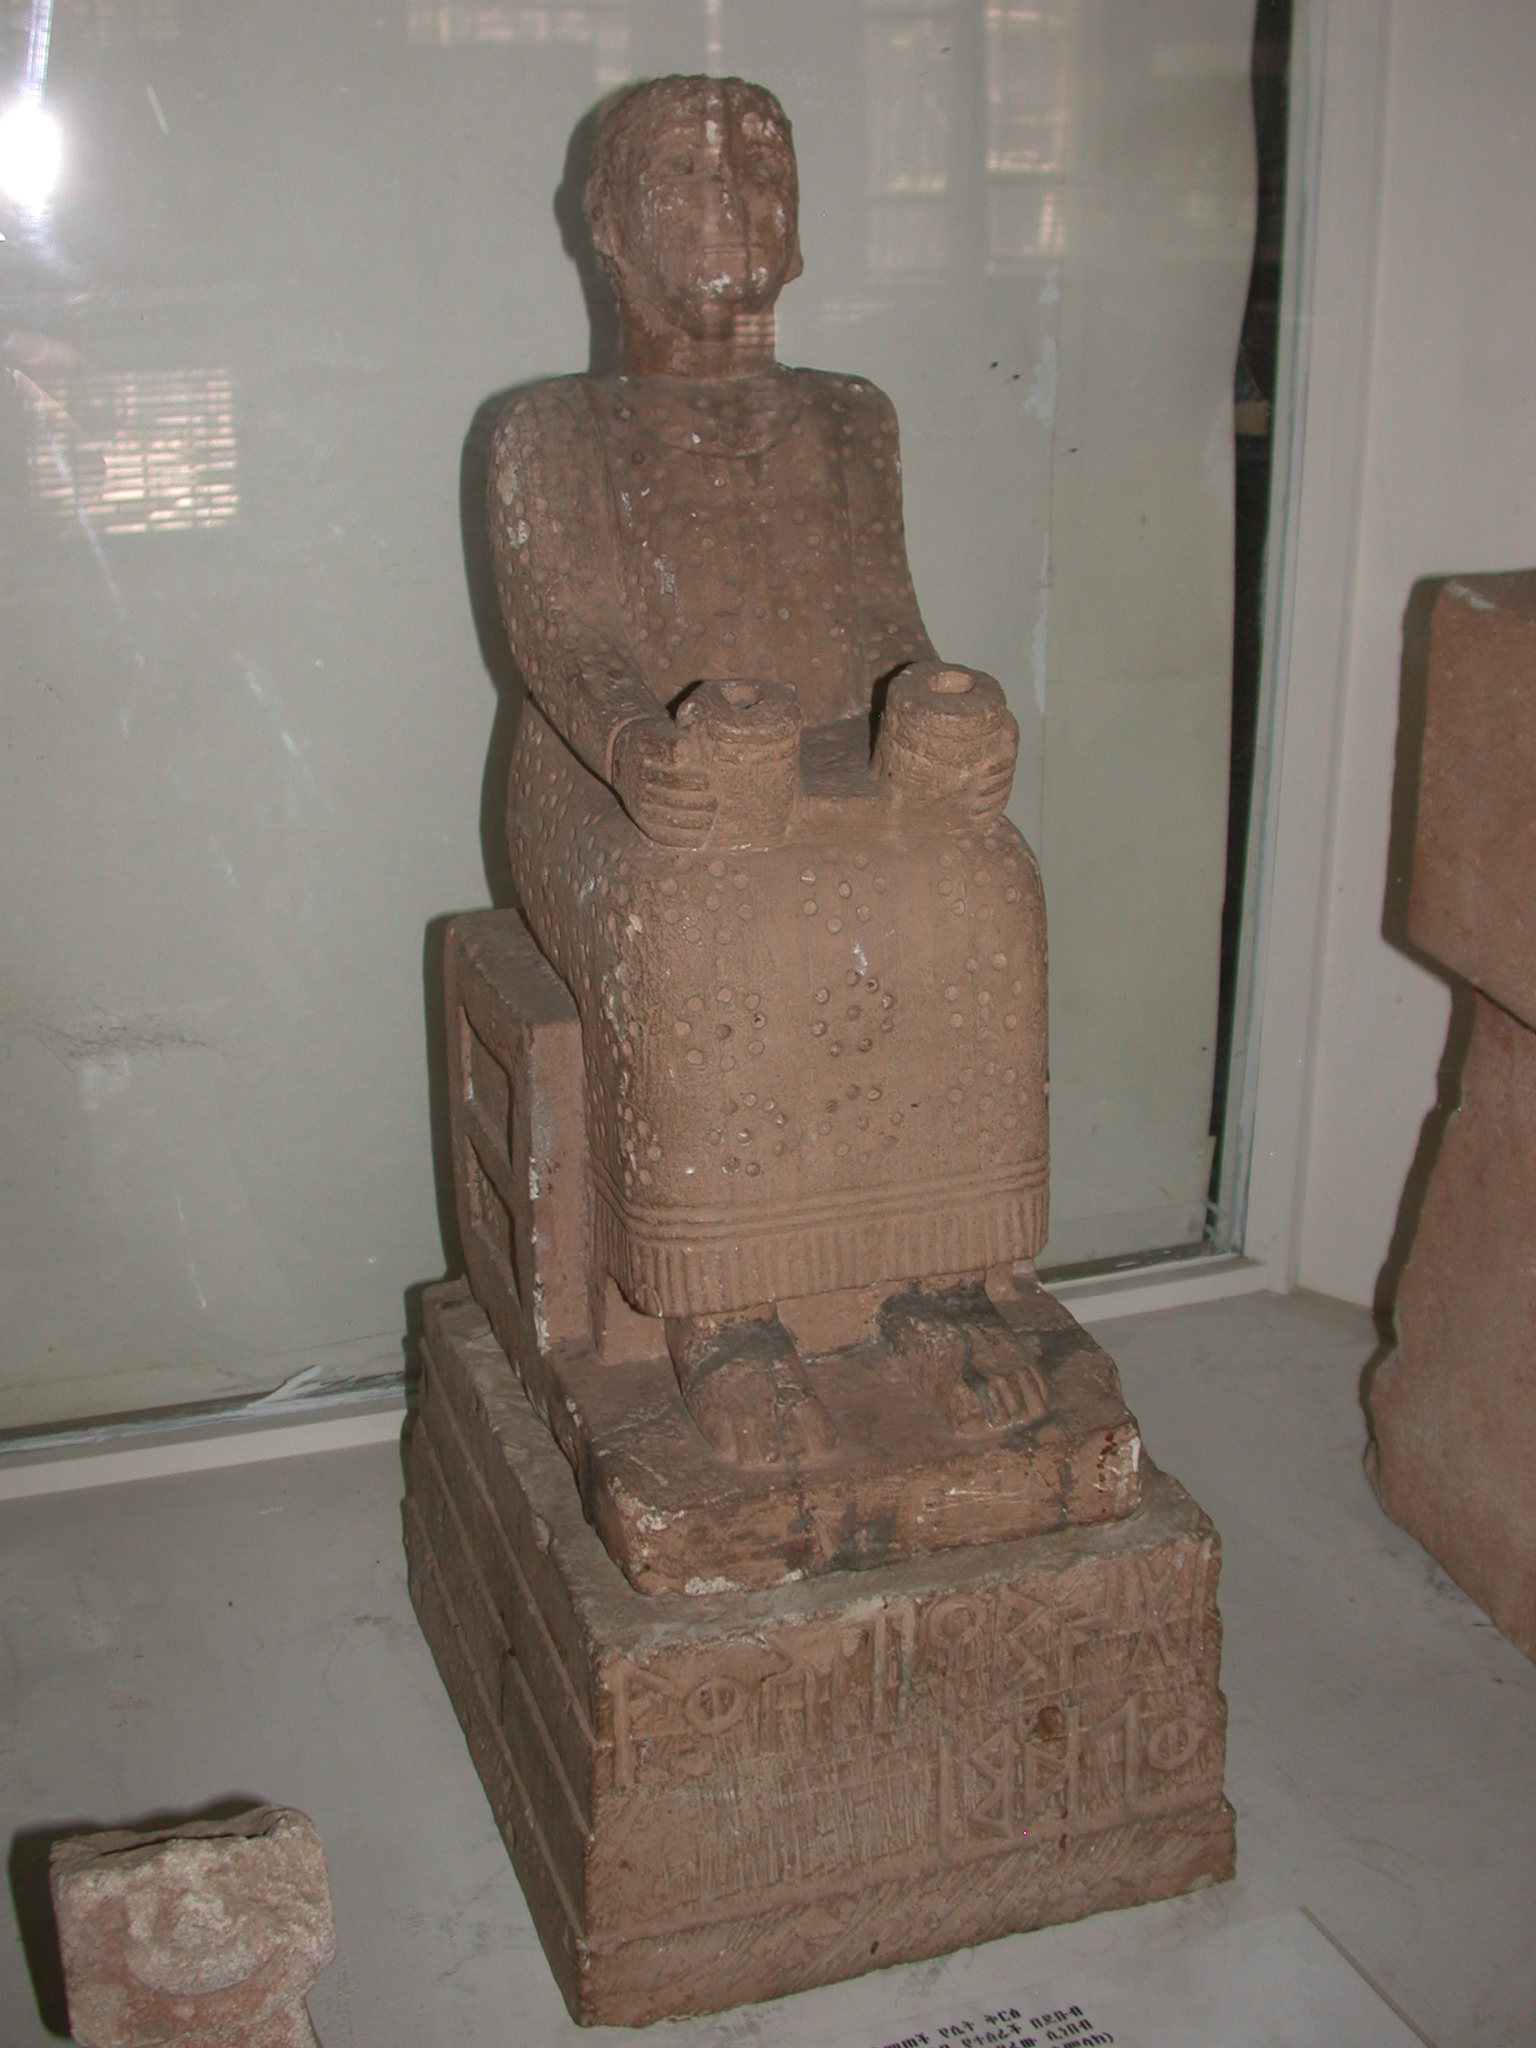 Limestone Statue of Female With Childbirth Inscription, 6th-5th Century BCE, in Addi-Galamo, Tigrai, Now Located in National Museum, Addis Ababa, Ethiopia